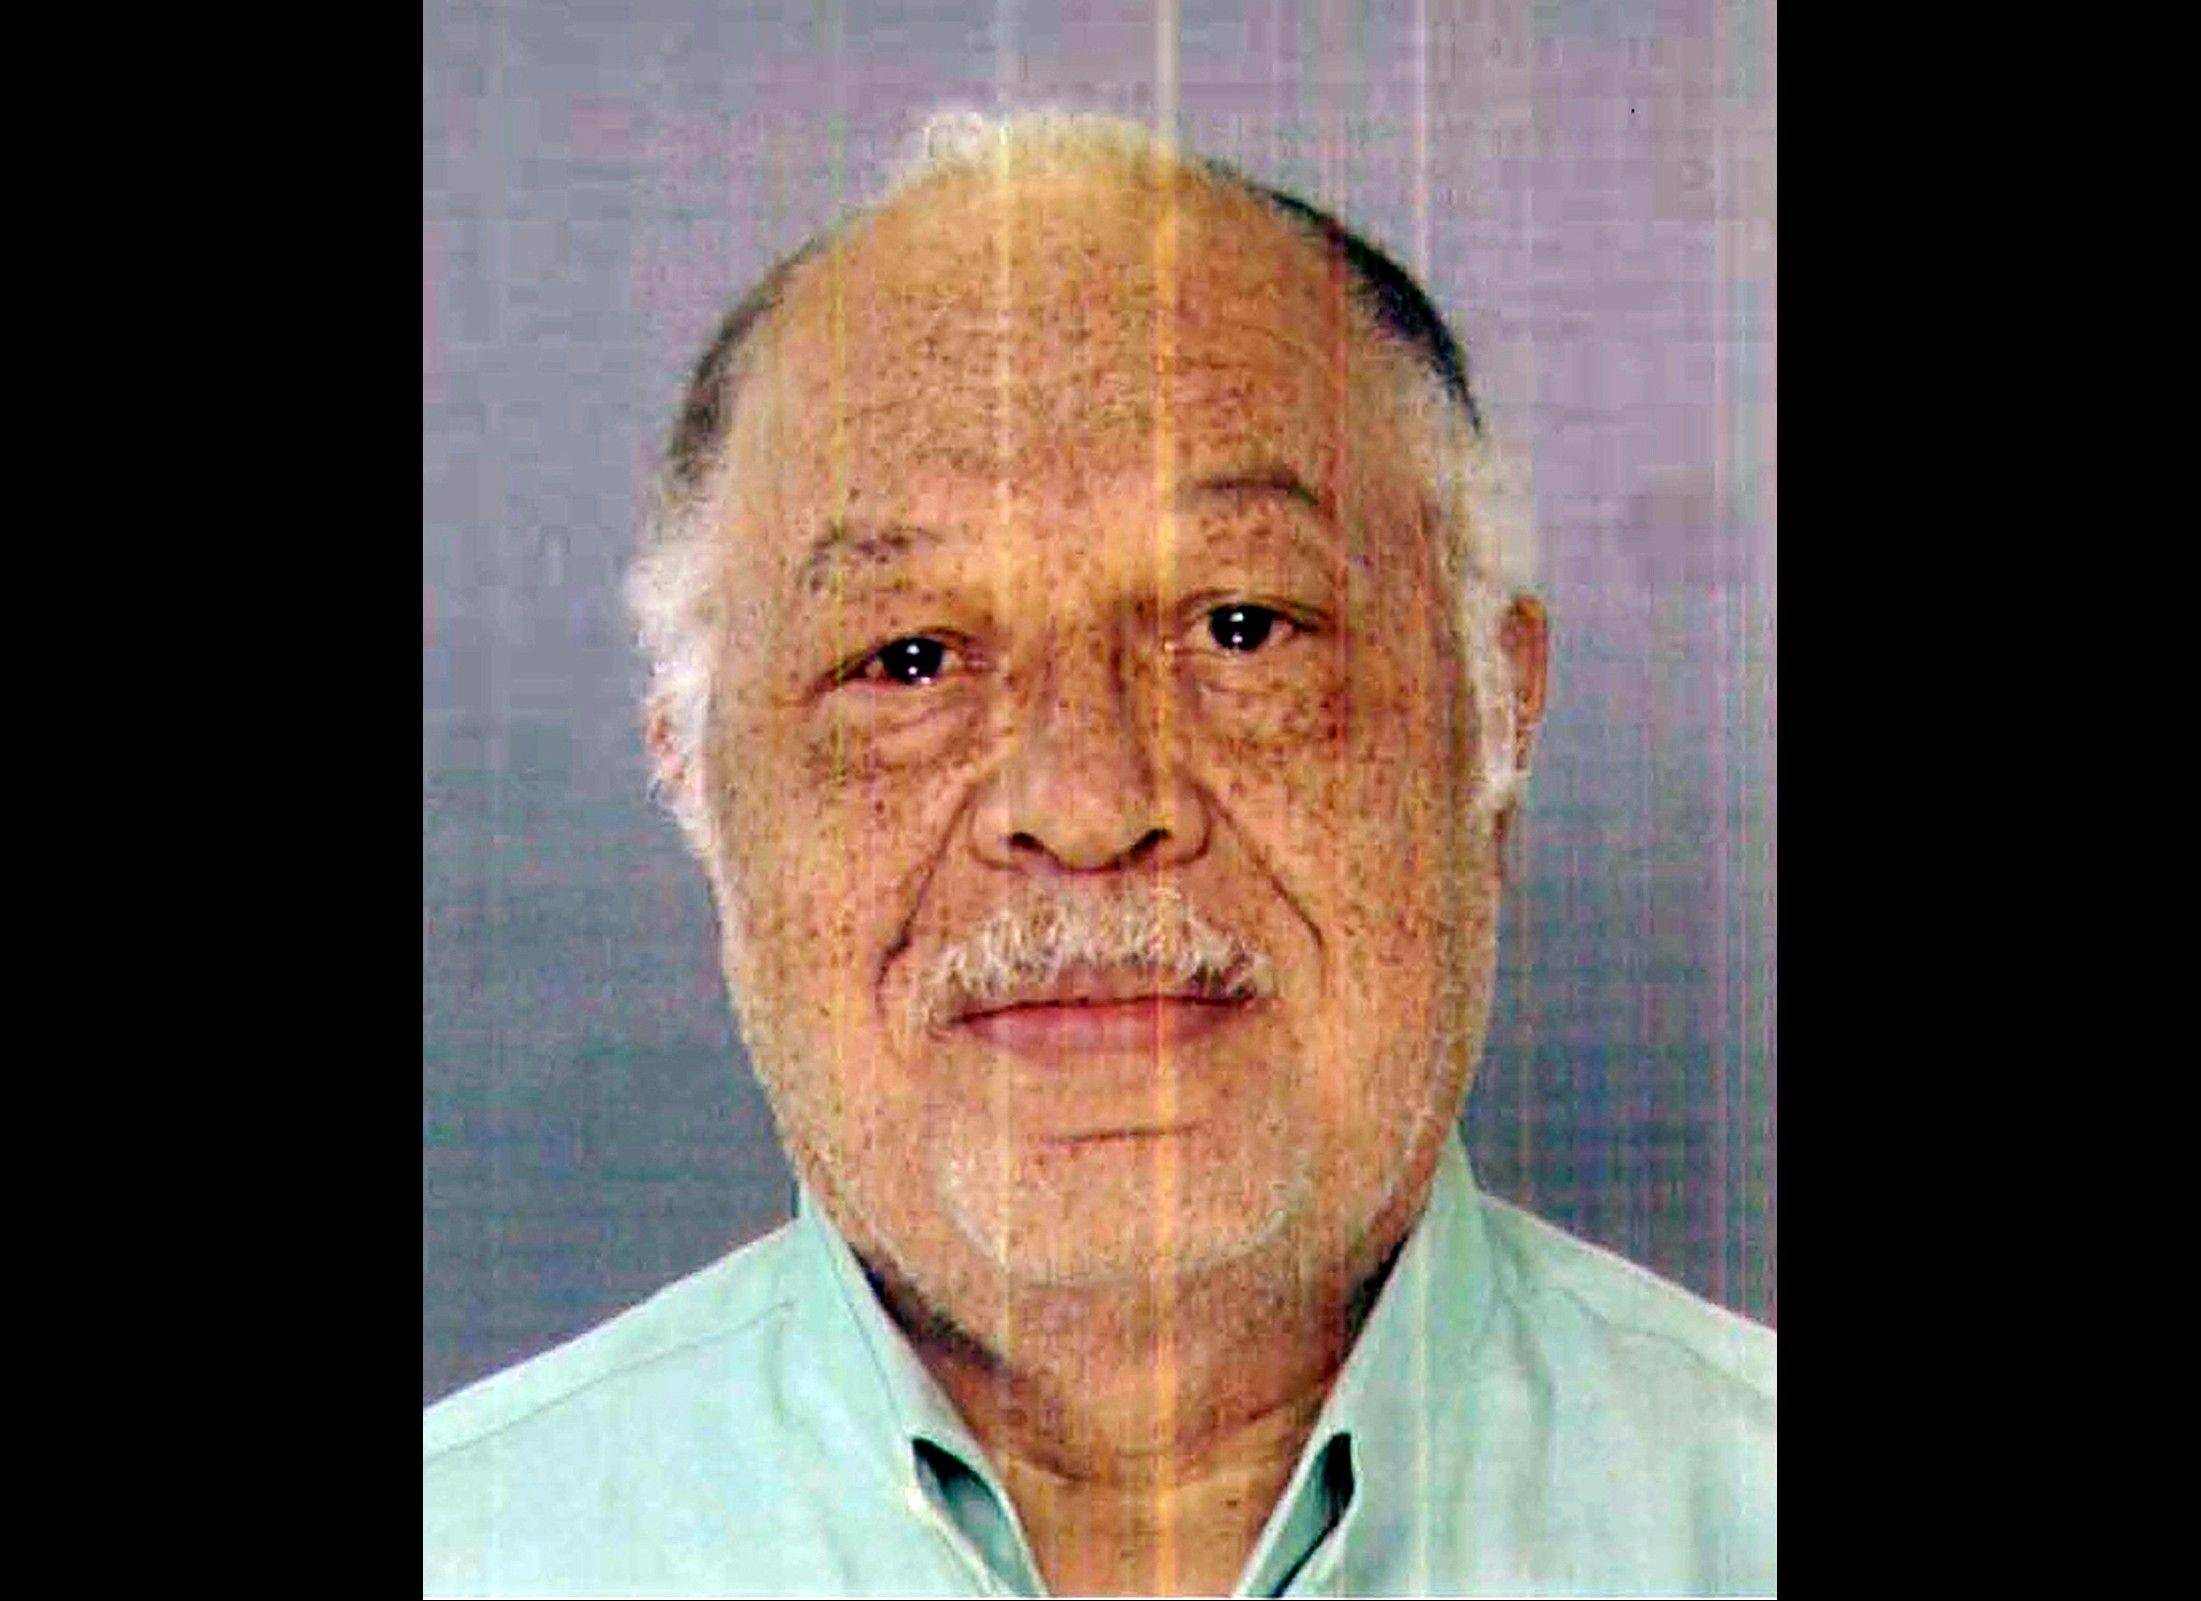 Dr. Kermit Gosnell was convicted this week of first-degree murder in the deaths of three babies born alive at his rogue clinic, then stabbed with scissors. He was given two life sentences Tuesday in a deal with prosecutors that spared him a potential death sentence, and the third sentence was handed down Wednesday. The sentences offer no chance at parole, meaning Gosnell, 72, will spend the rest of his life in prison.